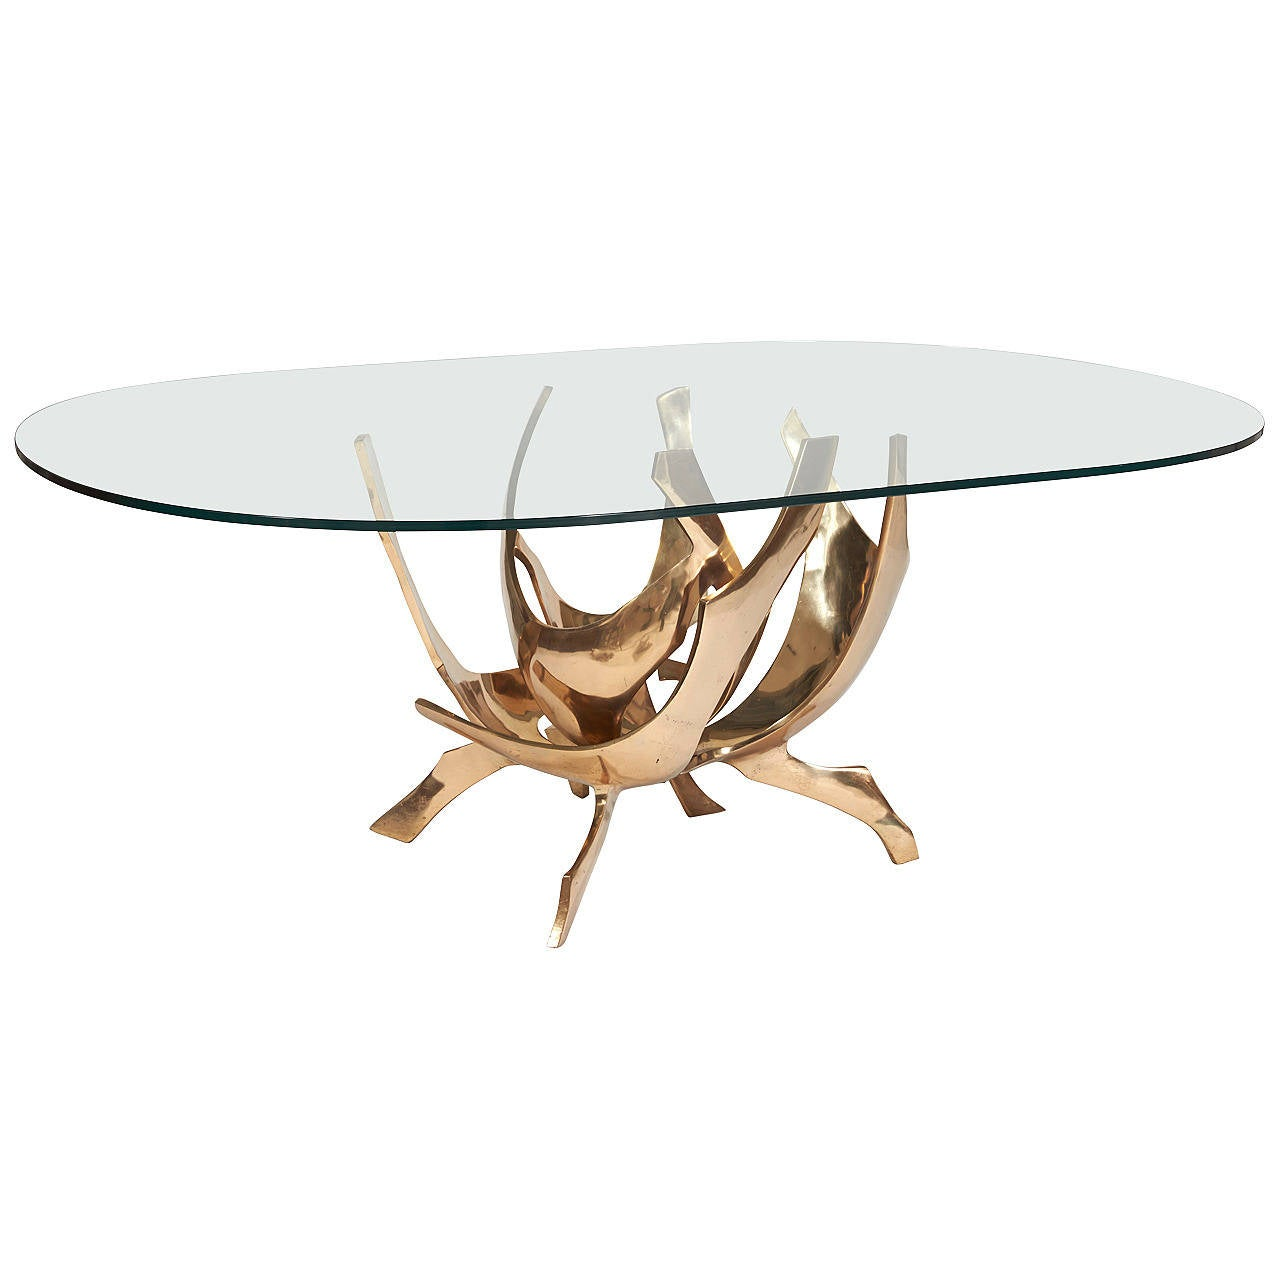 Dining room table by Fred Brouard at 1stdibs : 1698492l from www.1stdibs.com size 1280 x 1280 jpeg 60kB